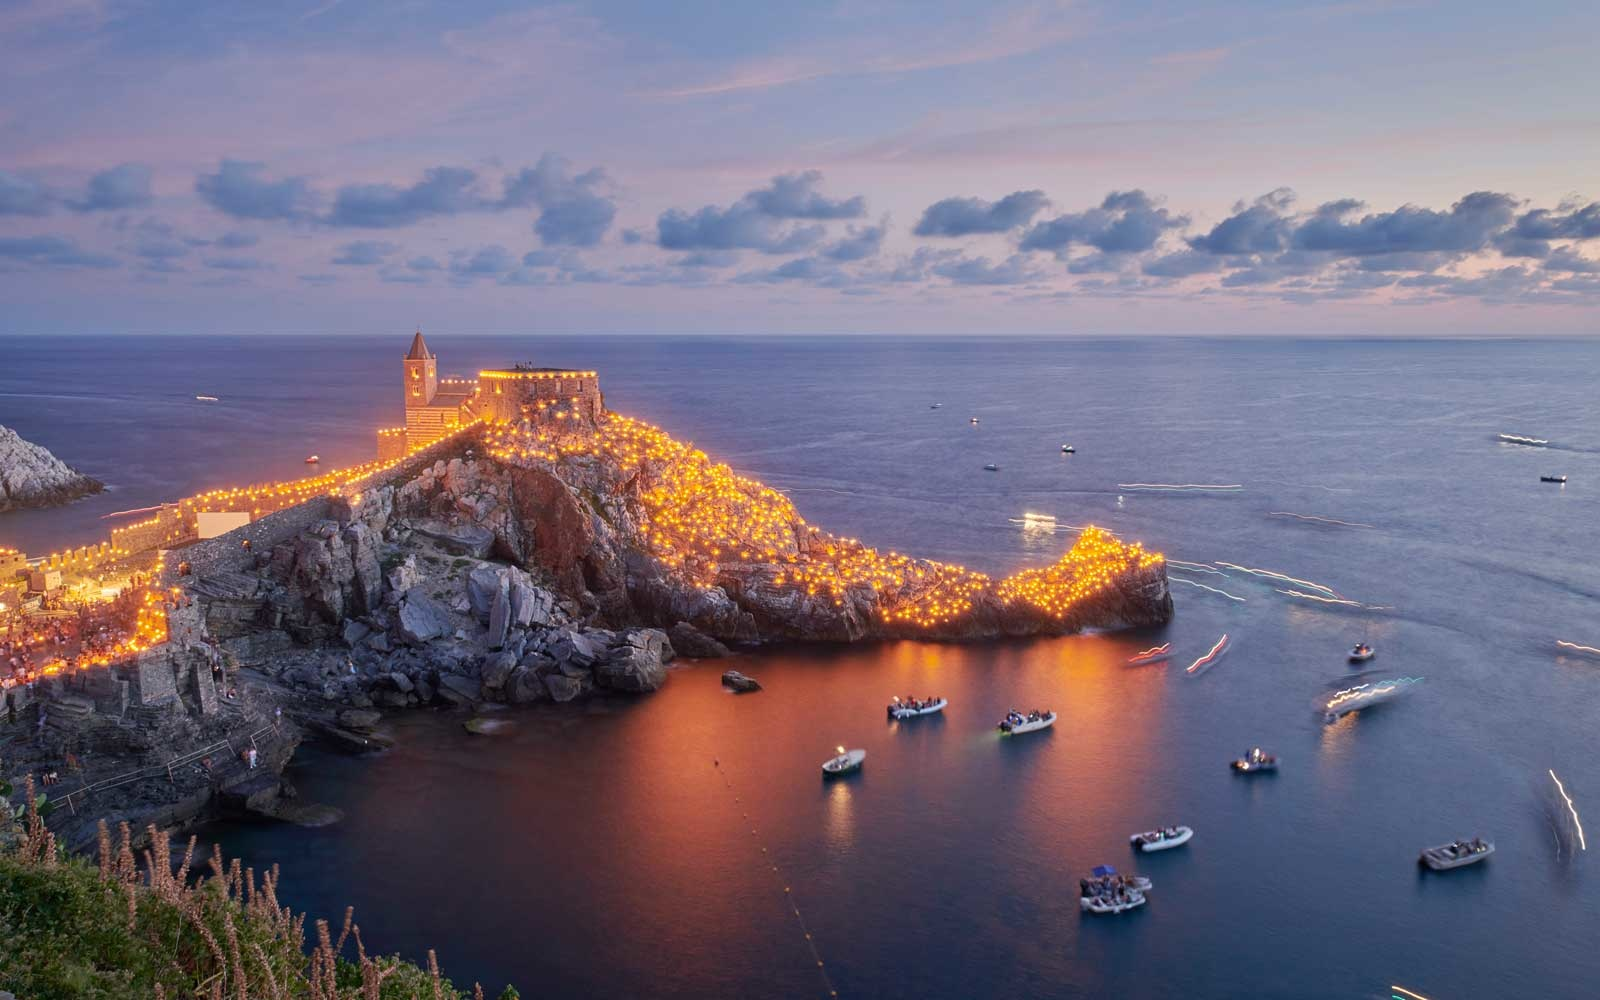 08/17/2019 Porto Venere, Italy. The view on Saint Peter's Church with candles lit all around it, for the celebrations of Madonna Bianca.